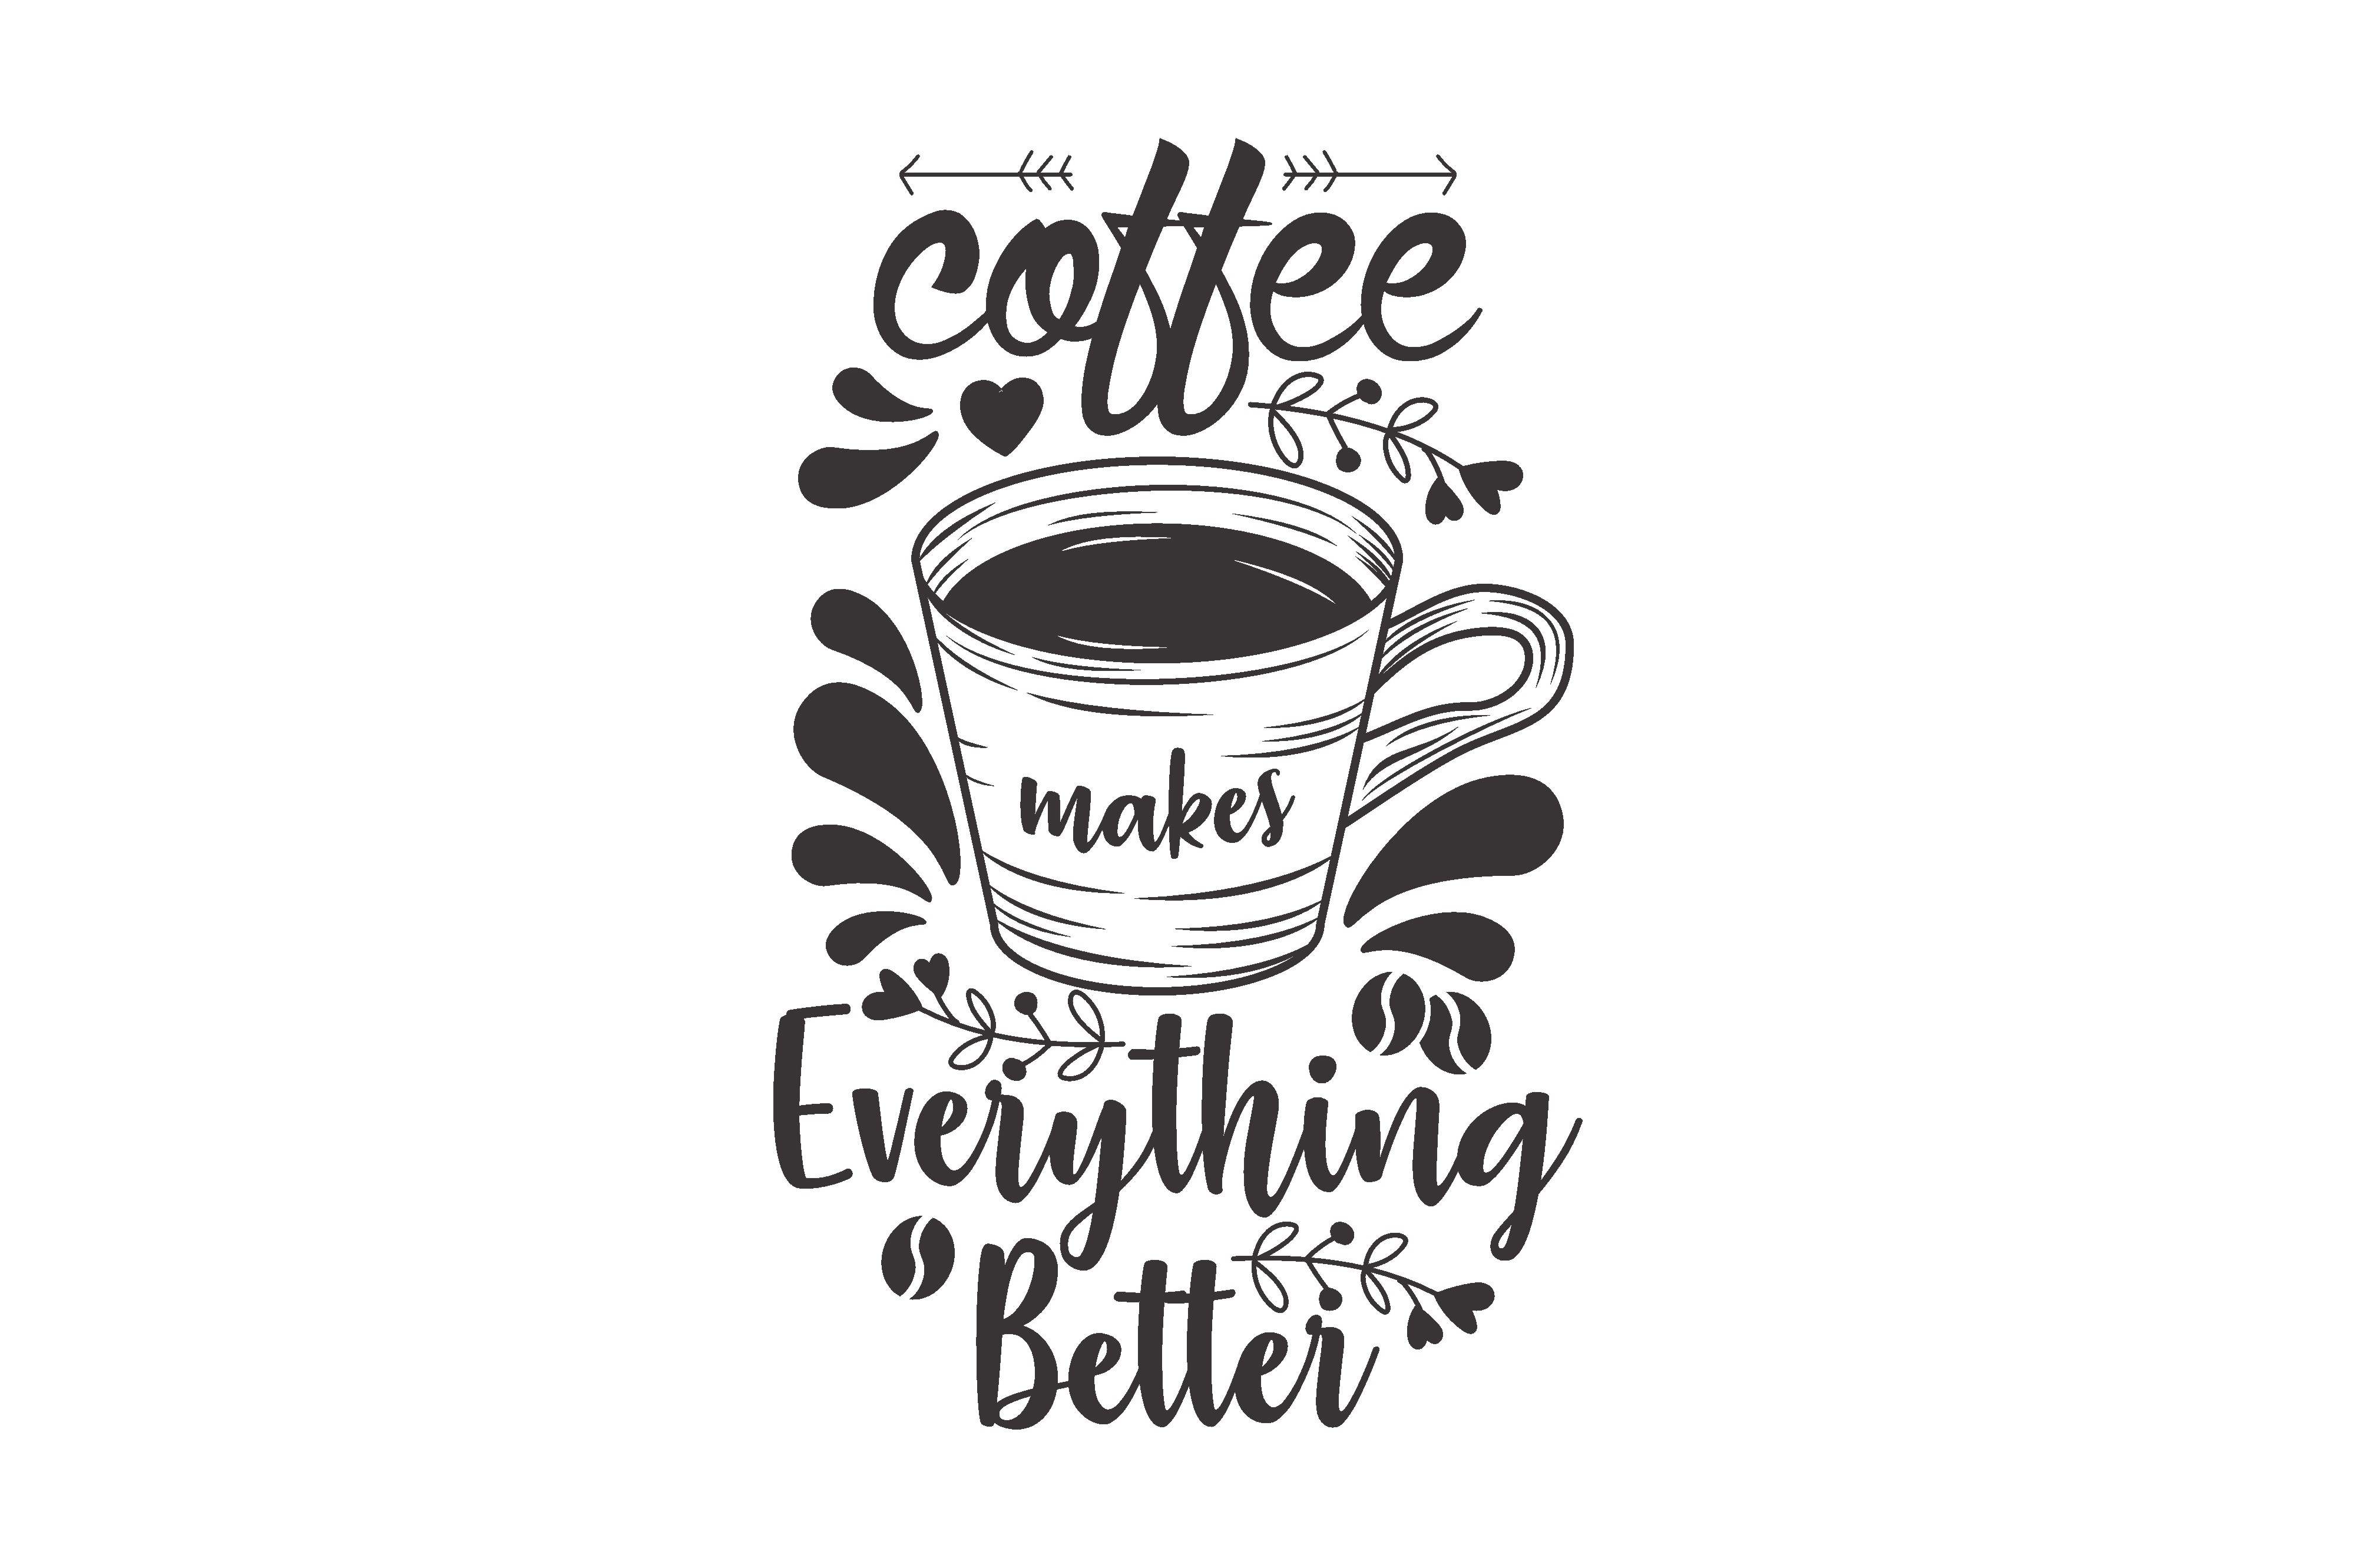 Download Free Coffee Makes Everything Better Graphic By Chairul Ma Arif for Cricut Explore, Silhouette and other cutting machines.